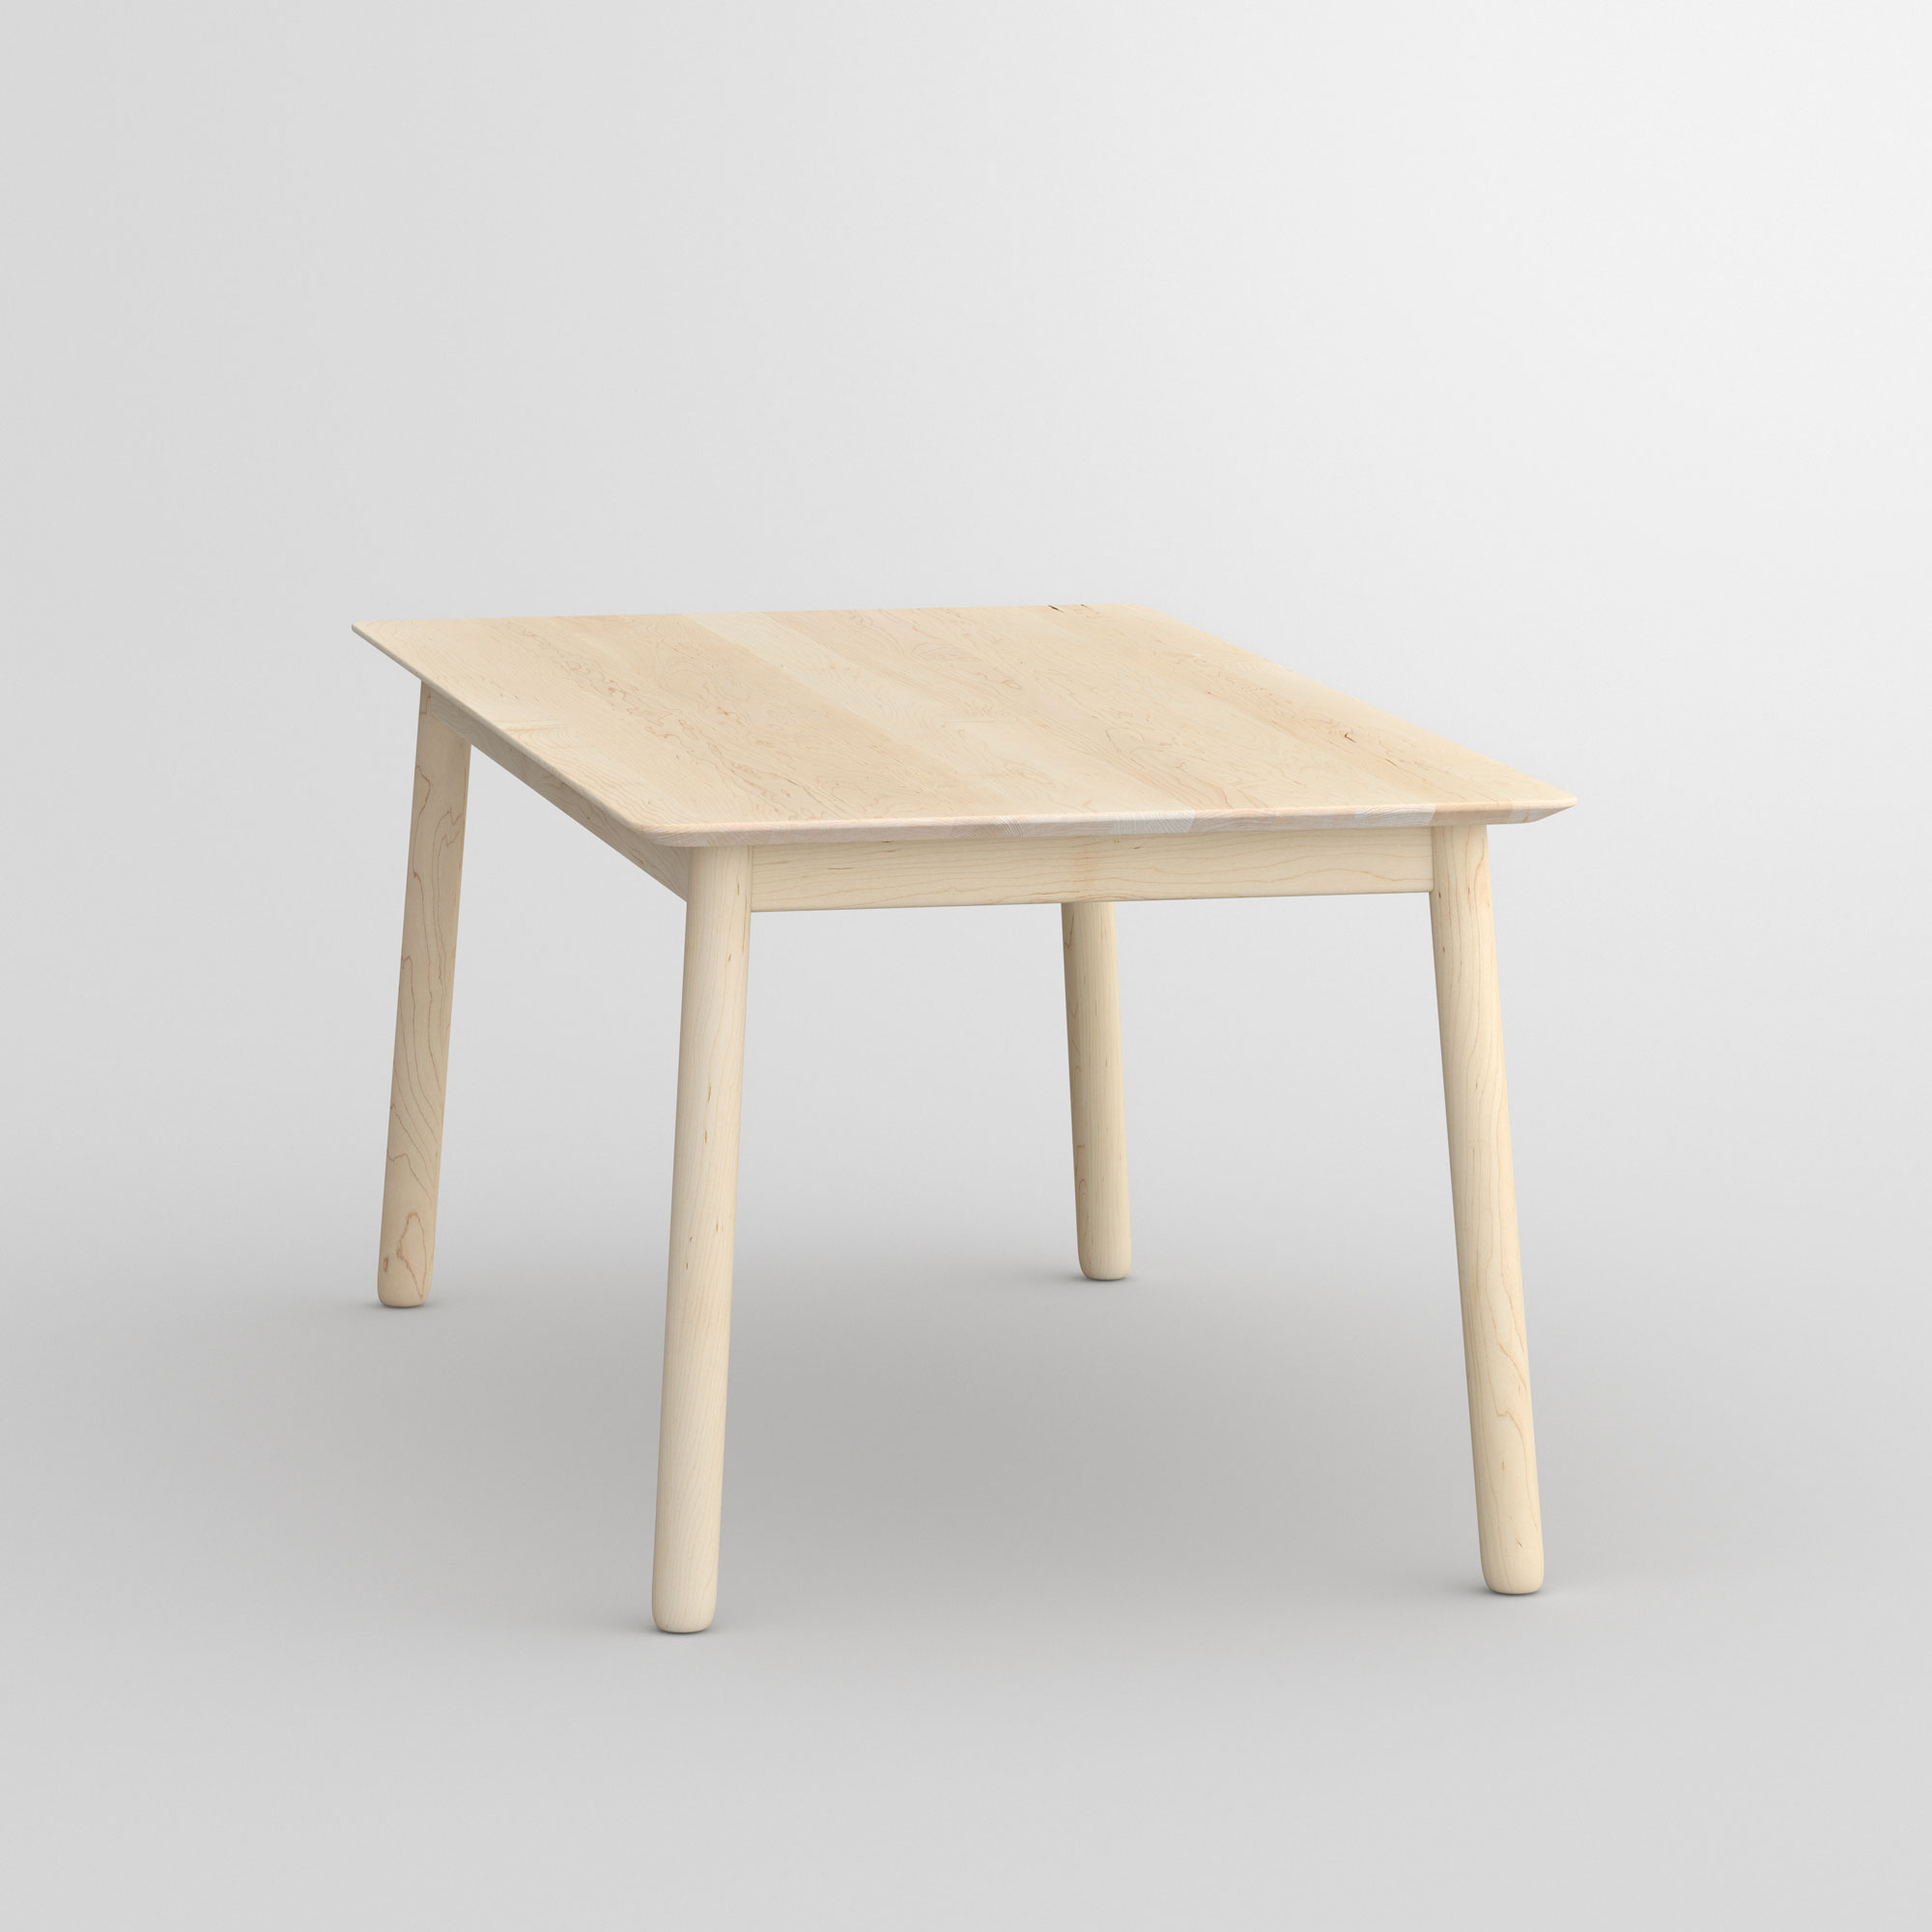 Style Wood Table LOCA cam3 custom made in solid wood by vitamin design